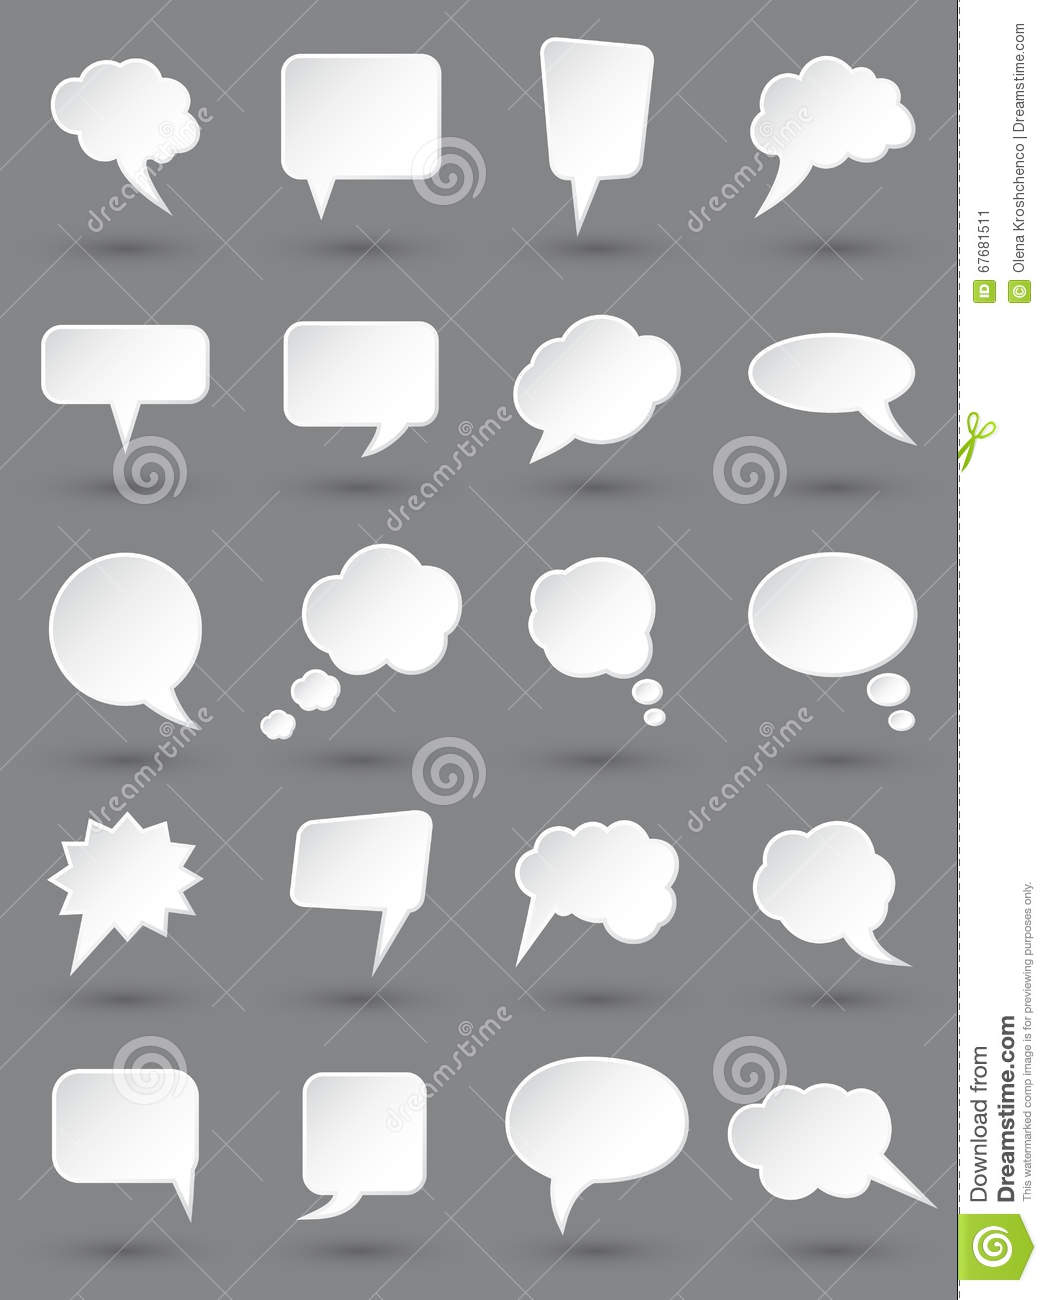 White speech bubbles set with shades on dark gray background.